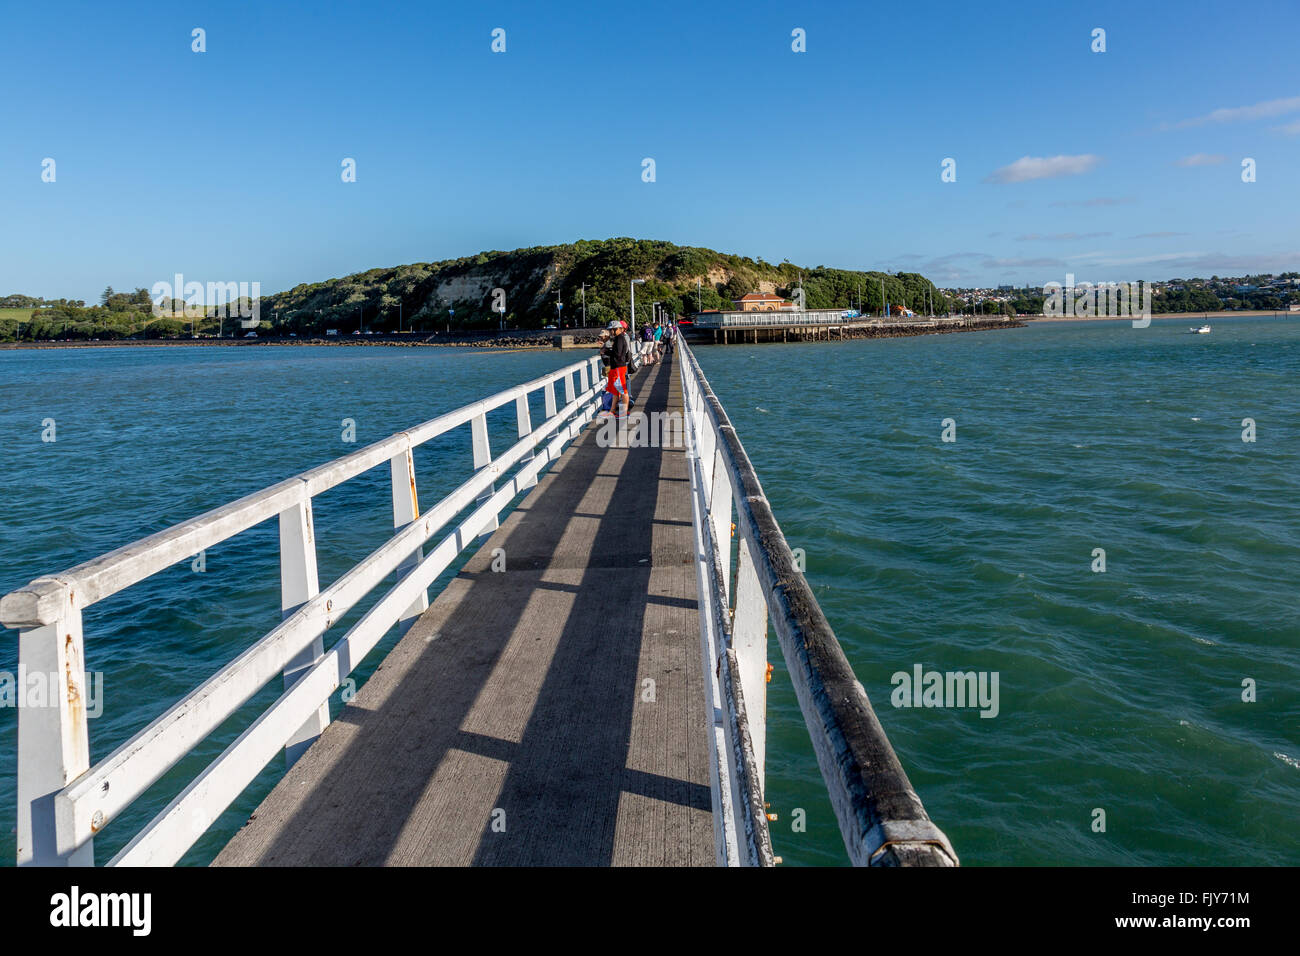 Wharf at auckland mission bay stock photo 97713888 alamy - Mission bay swimming pool auckland ...